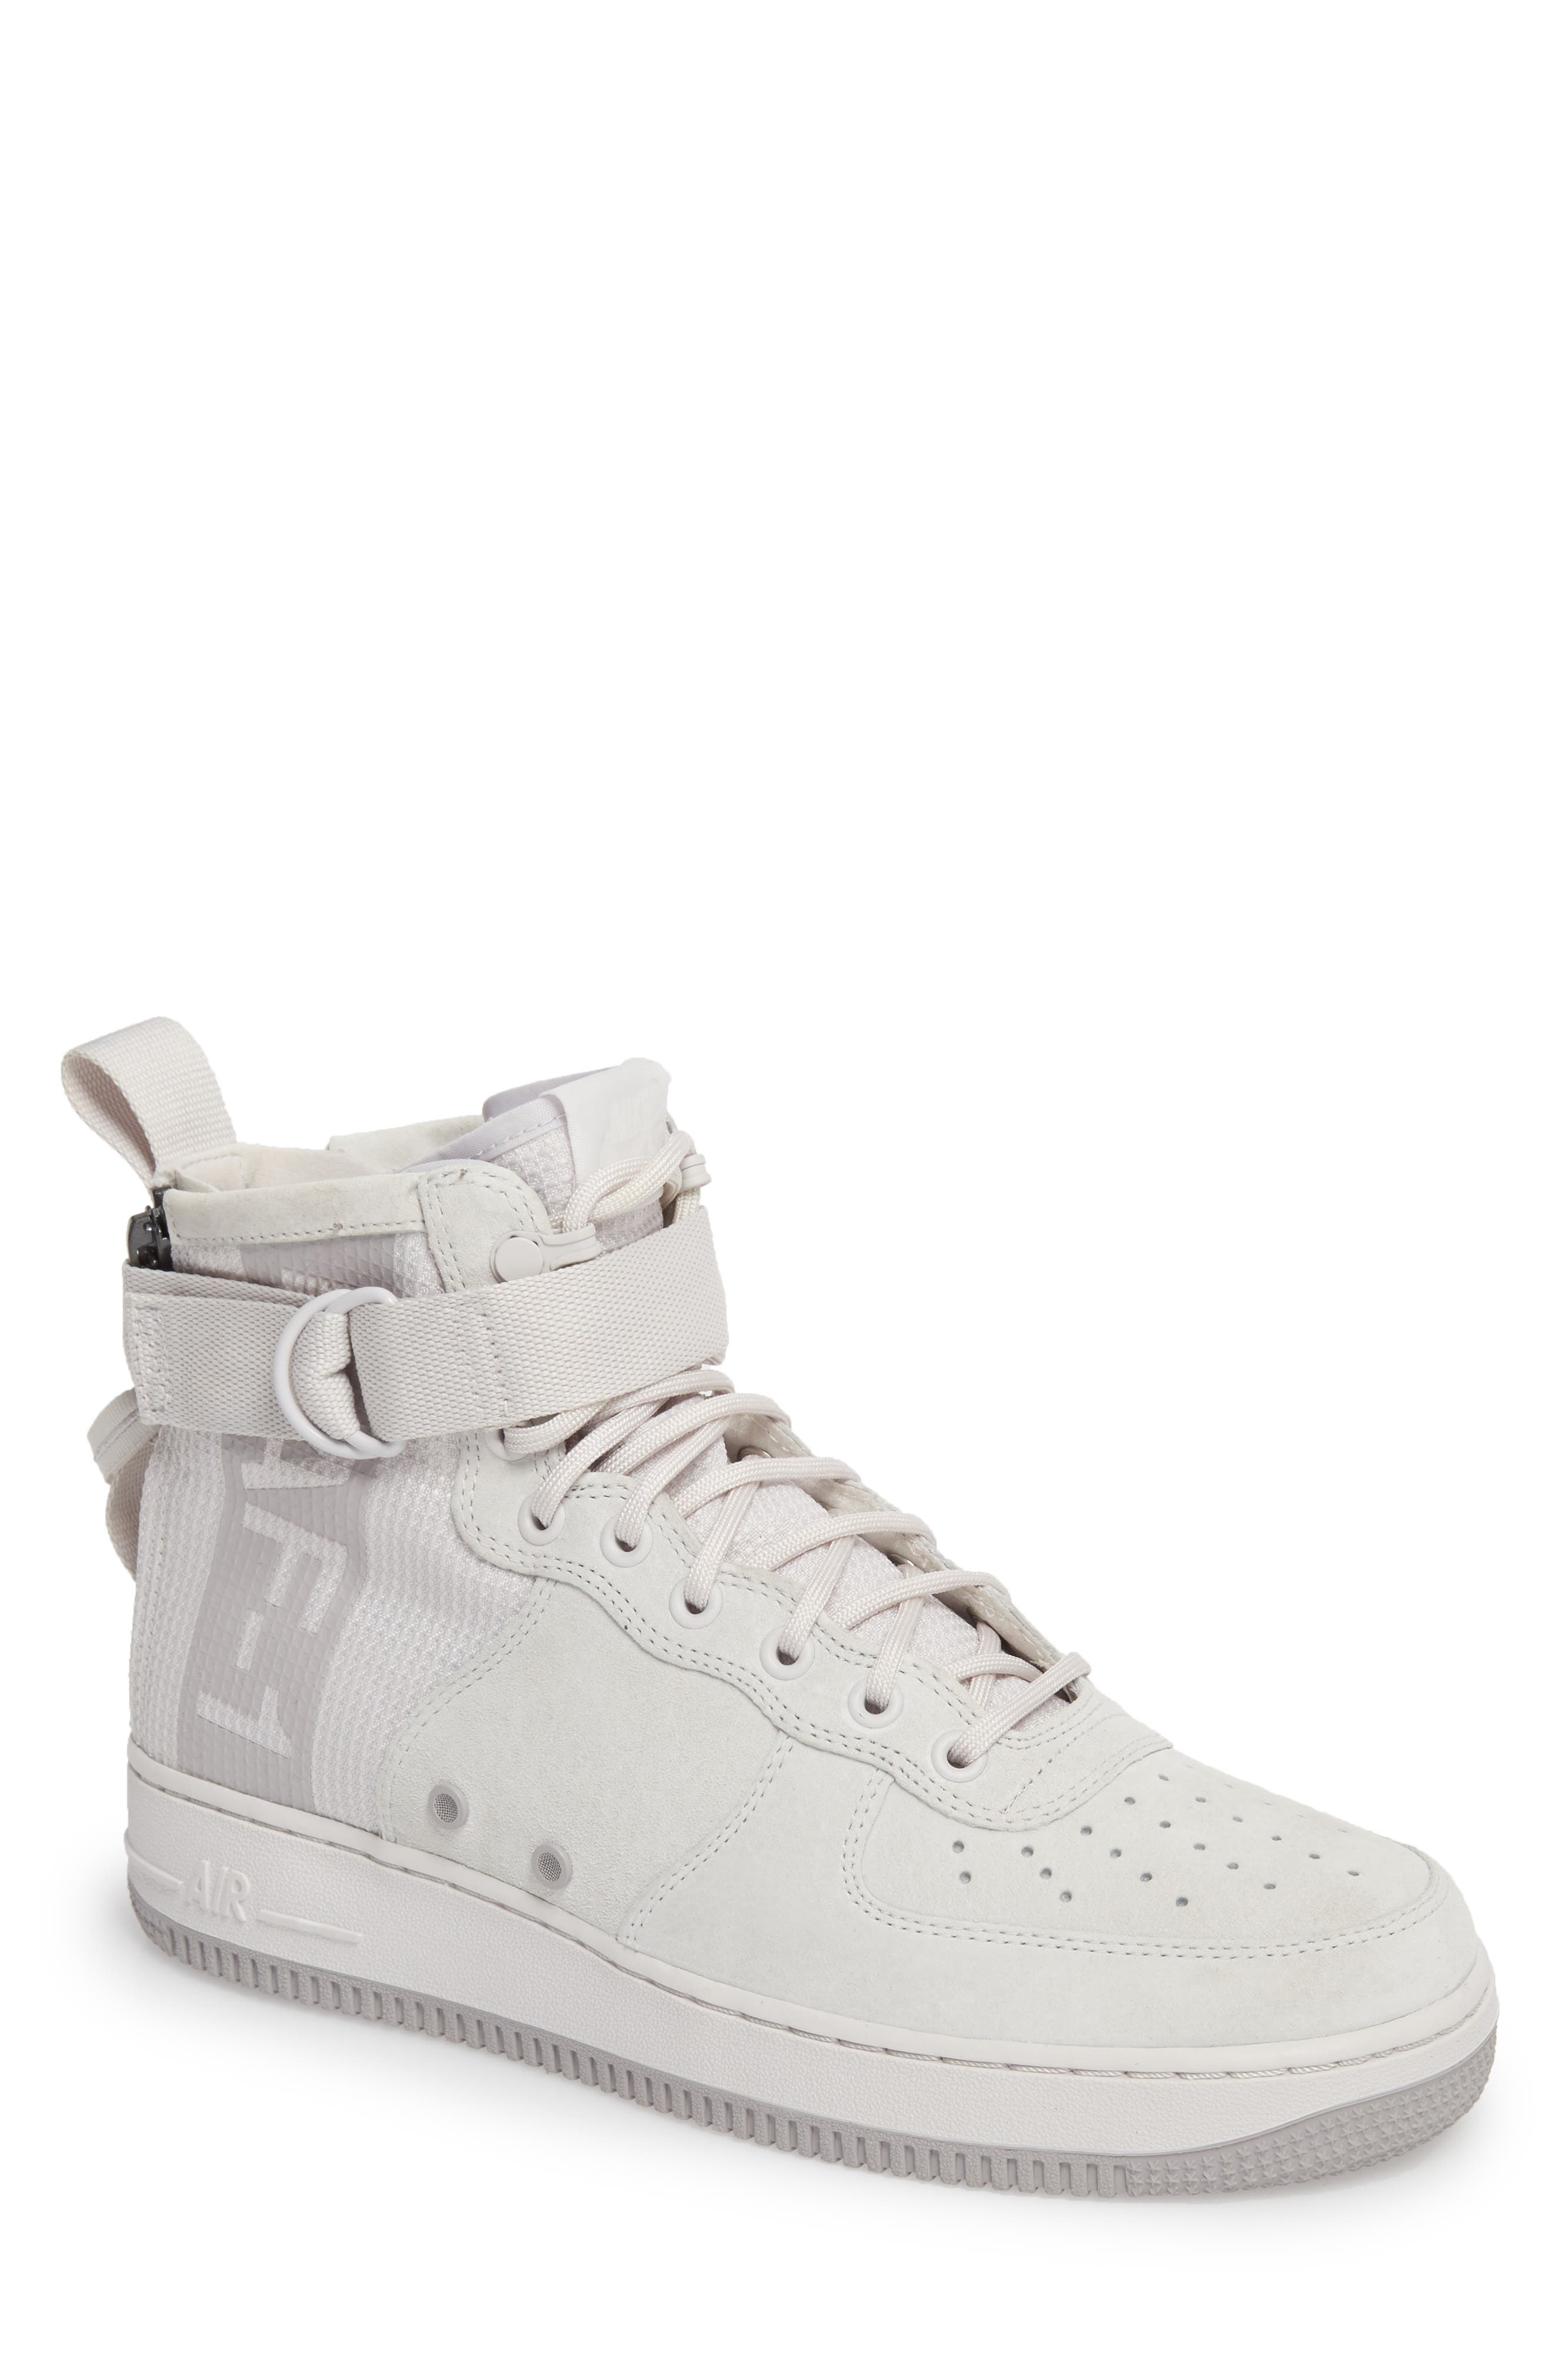 SF Air Force 1 Mid Suede Sneaker,                             Main thumbnail 1, color,                             021